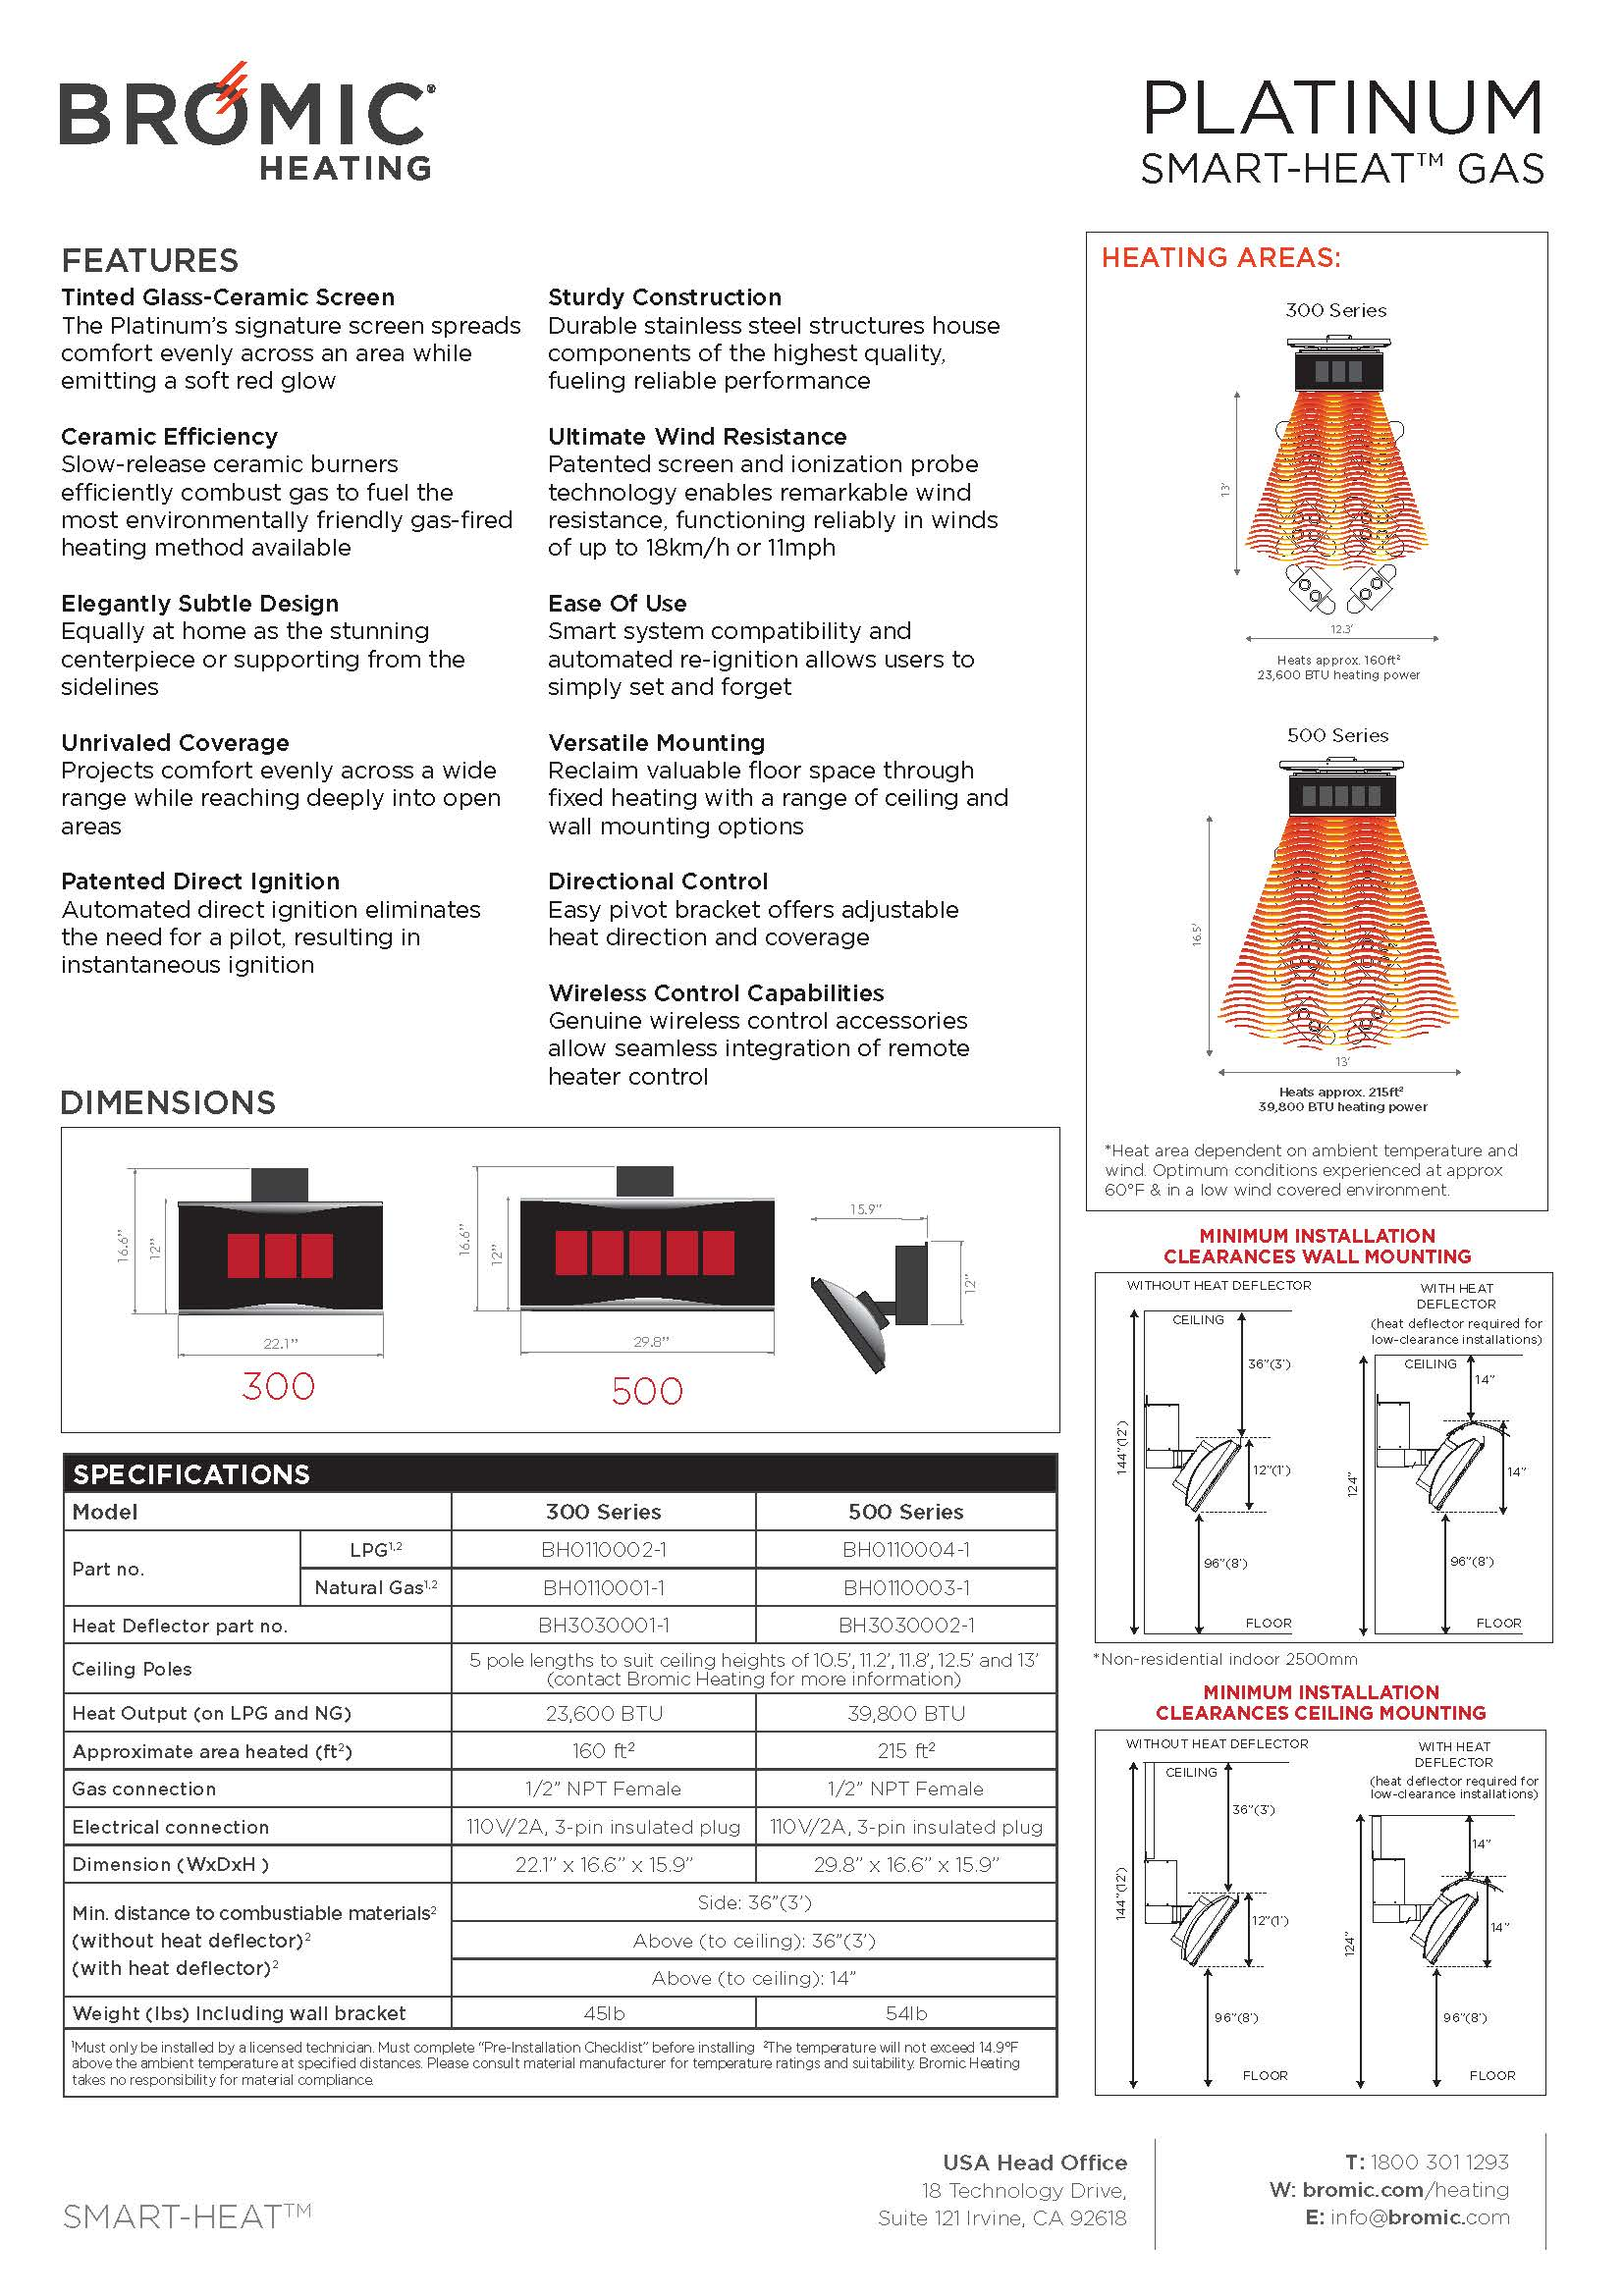 Bromic Heater Information Page 23